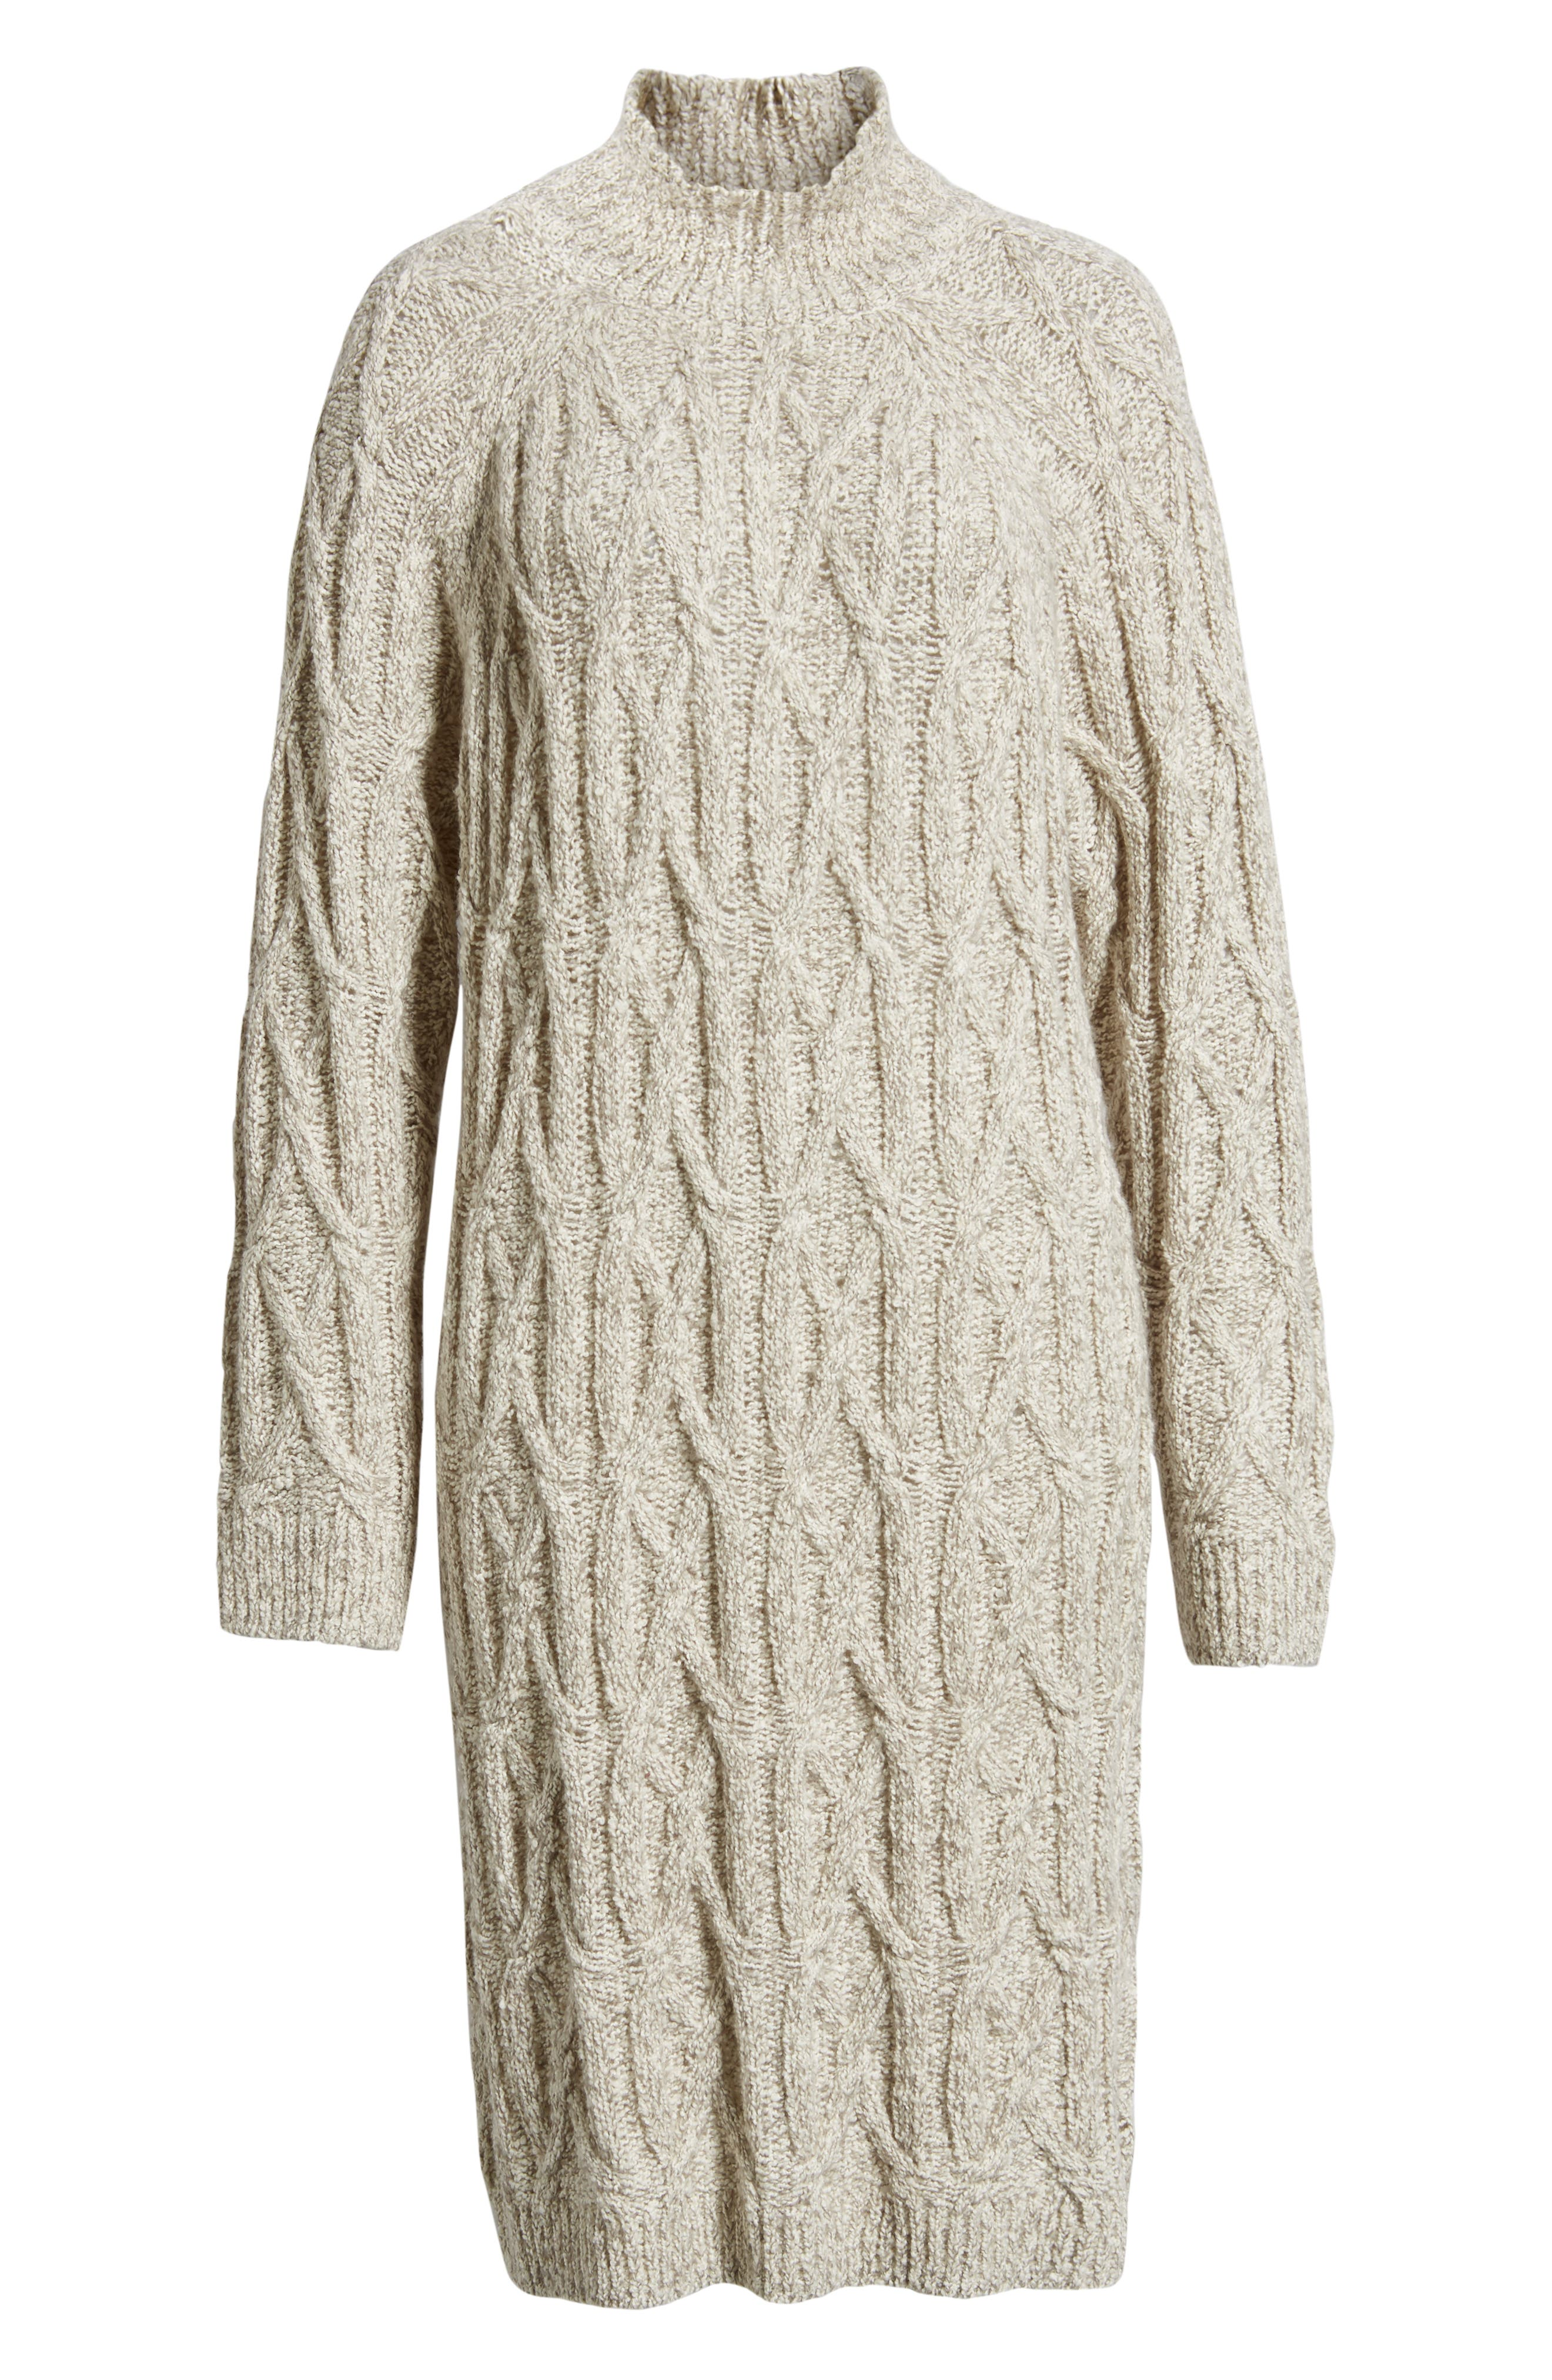 Cable Knit Sweater Dress,                             Alternate thumbnail 7, color,                             GREY PEARL MARL